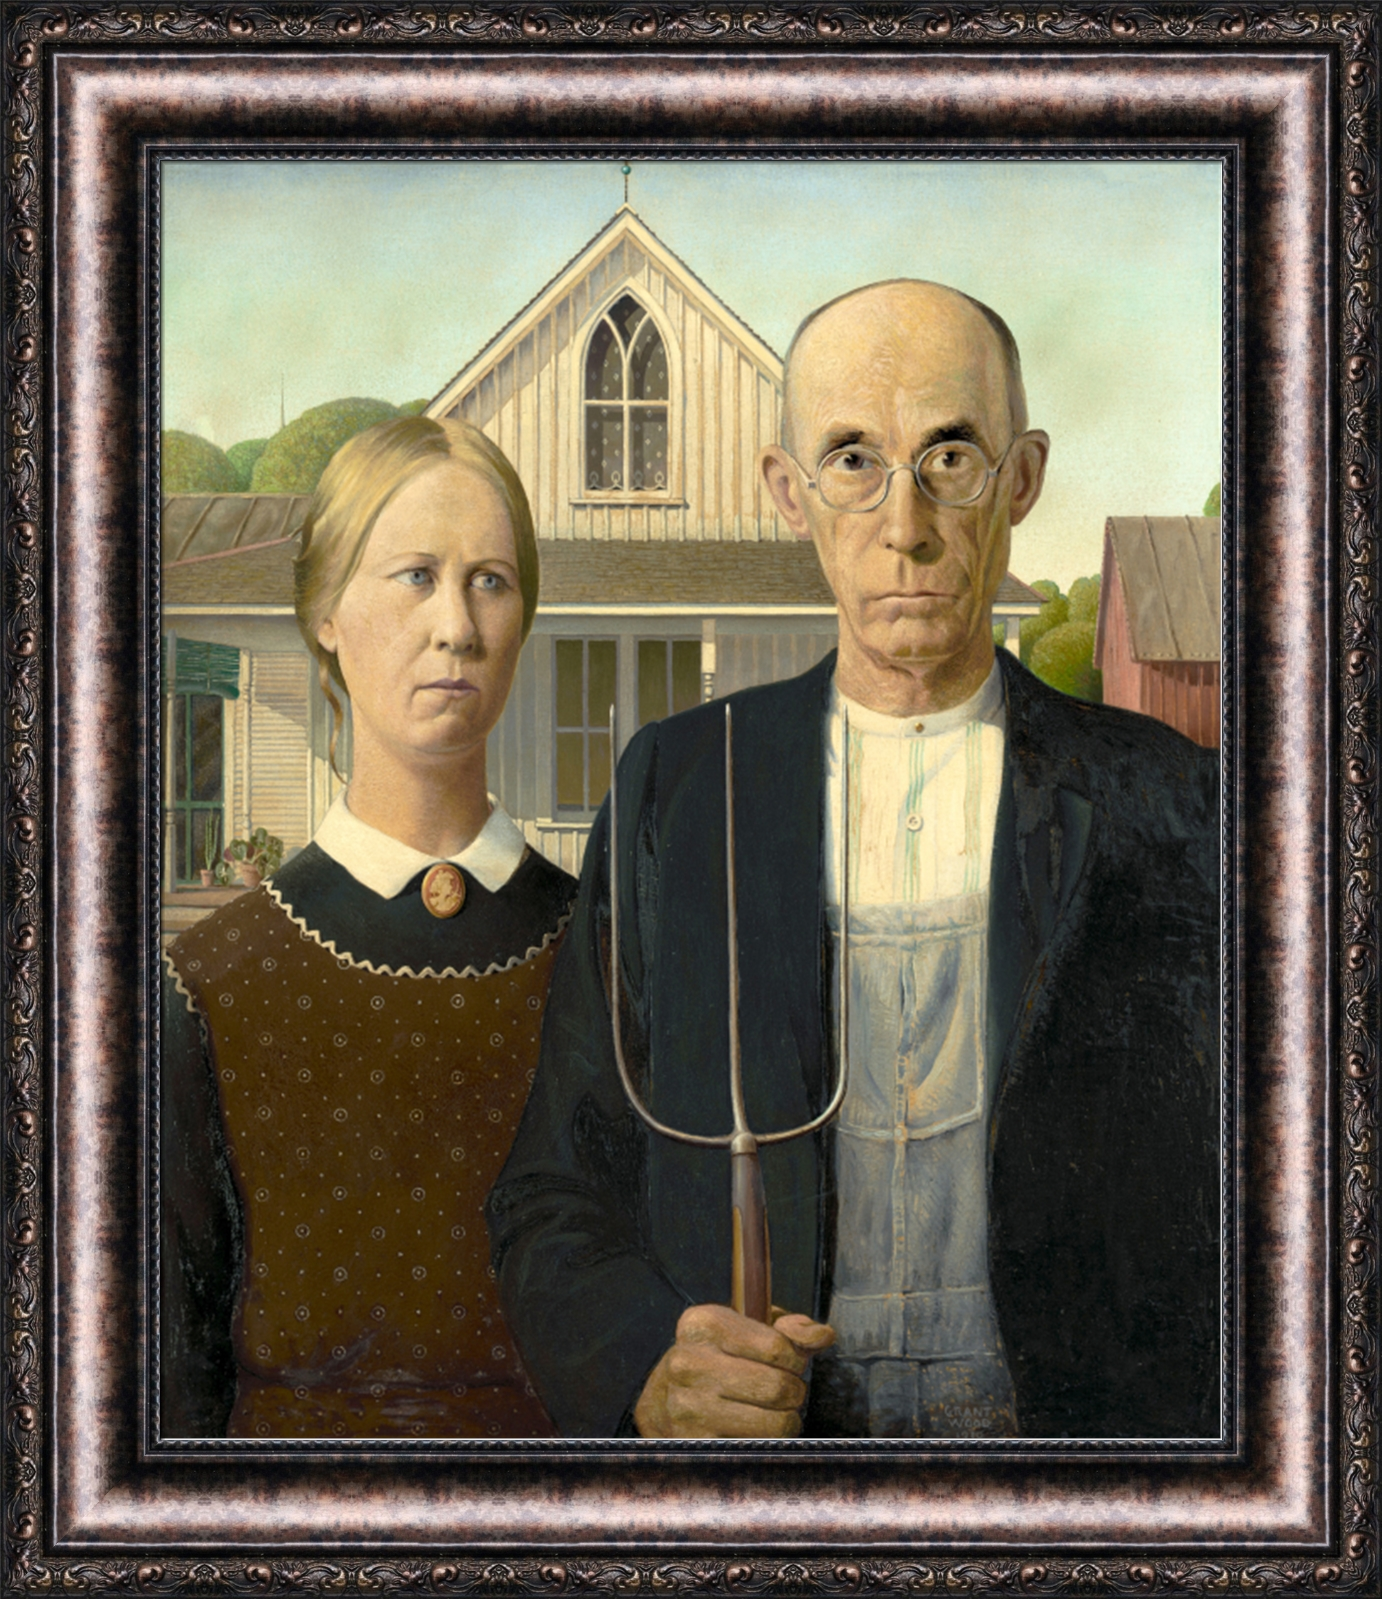 american gothic was painted by grant Grant wood and american gothic painting american gothic grant had his sister and their local dentist pose in front of the house, and painted them with a very.